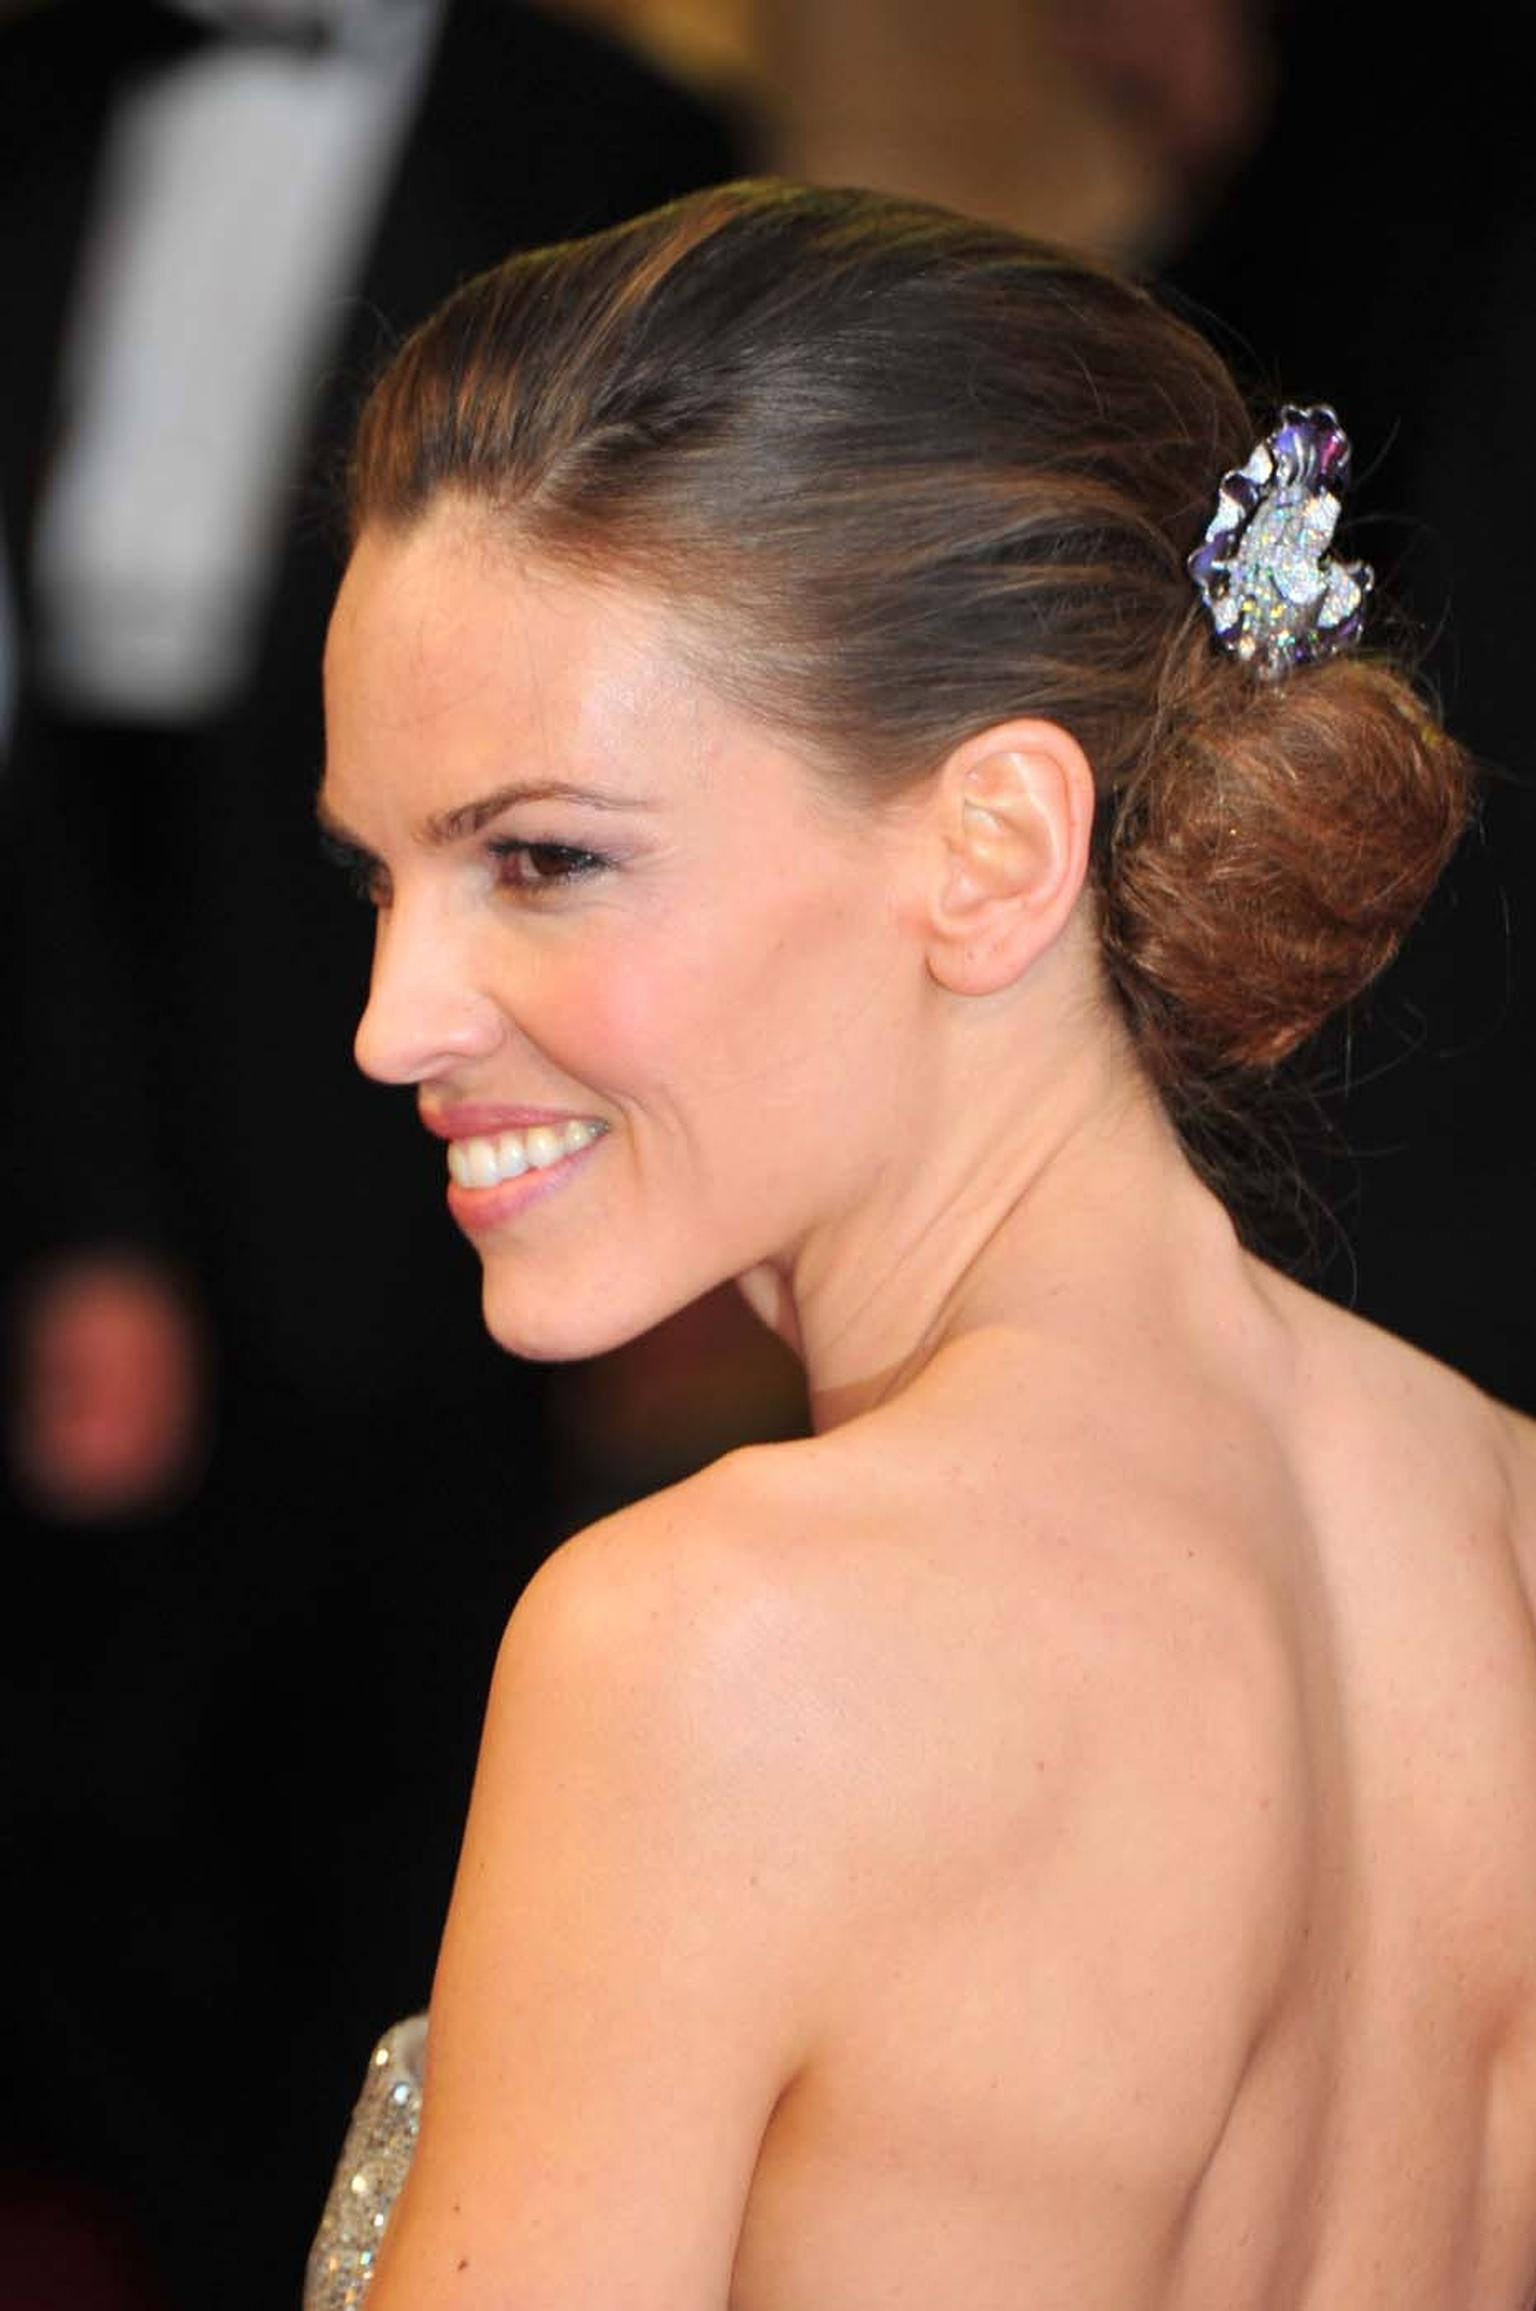 Hilary Swank wore a pair of Myth of Orchid high jewellery earrings by Anna Hu as hair ornaments to the 2011 Oscars.